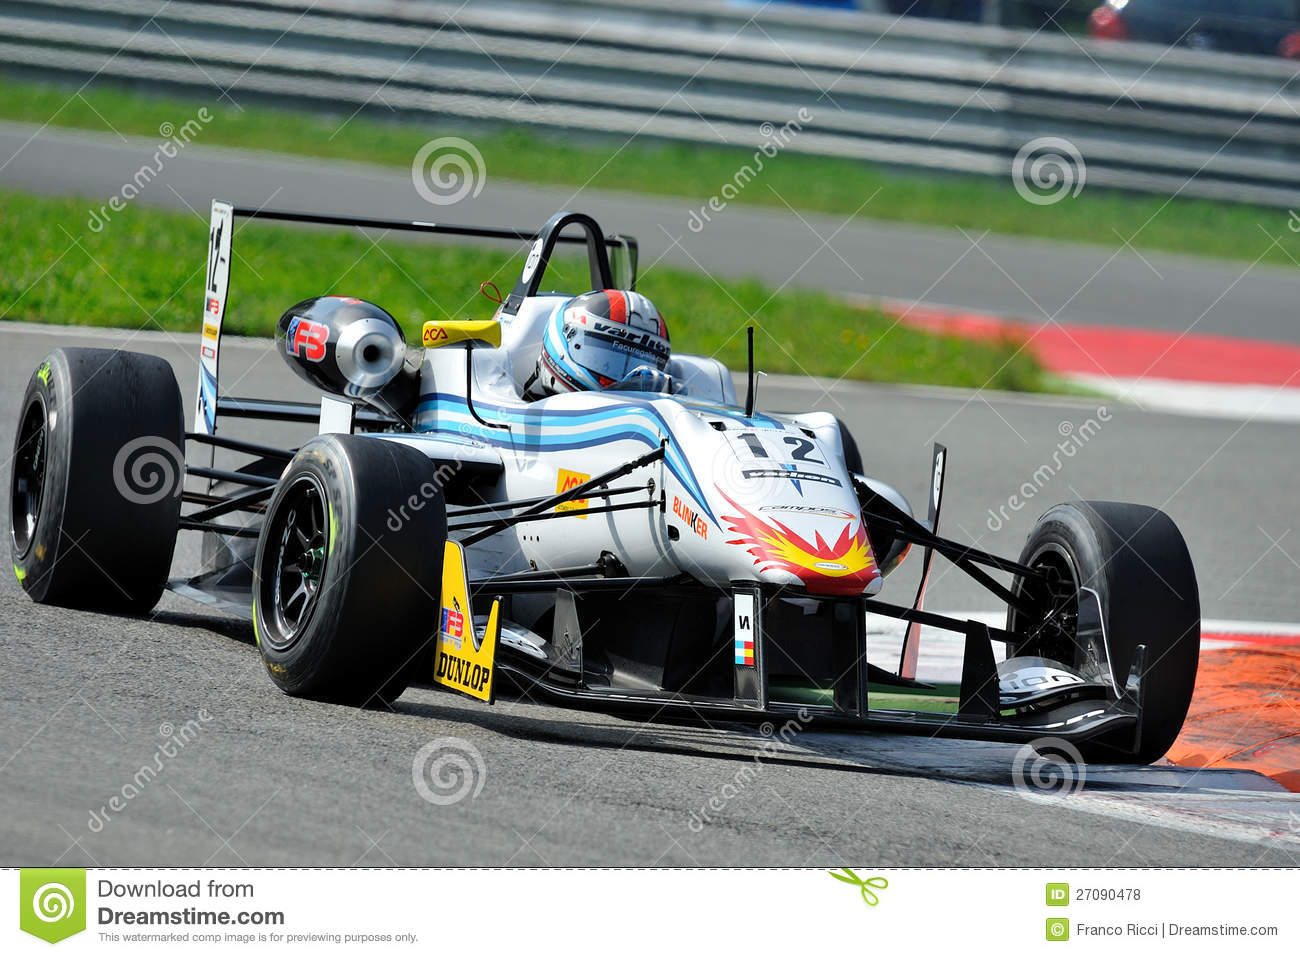 formula 3 race car in monza race track editorial stock photo image 27090478. Black Bedroom Furniture Sets. Home Design Ideas